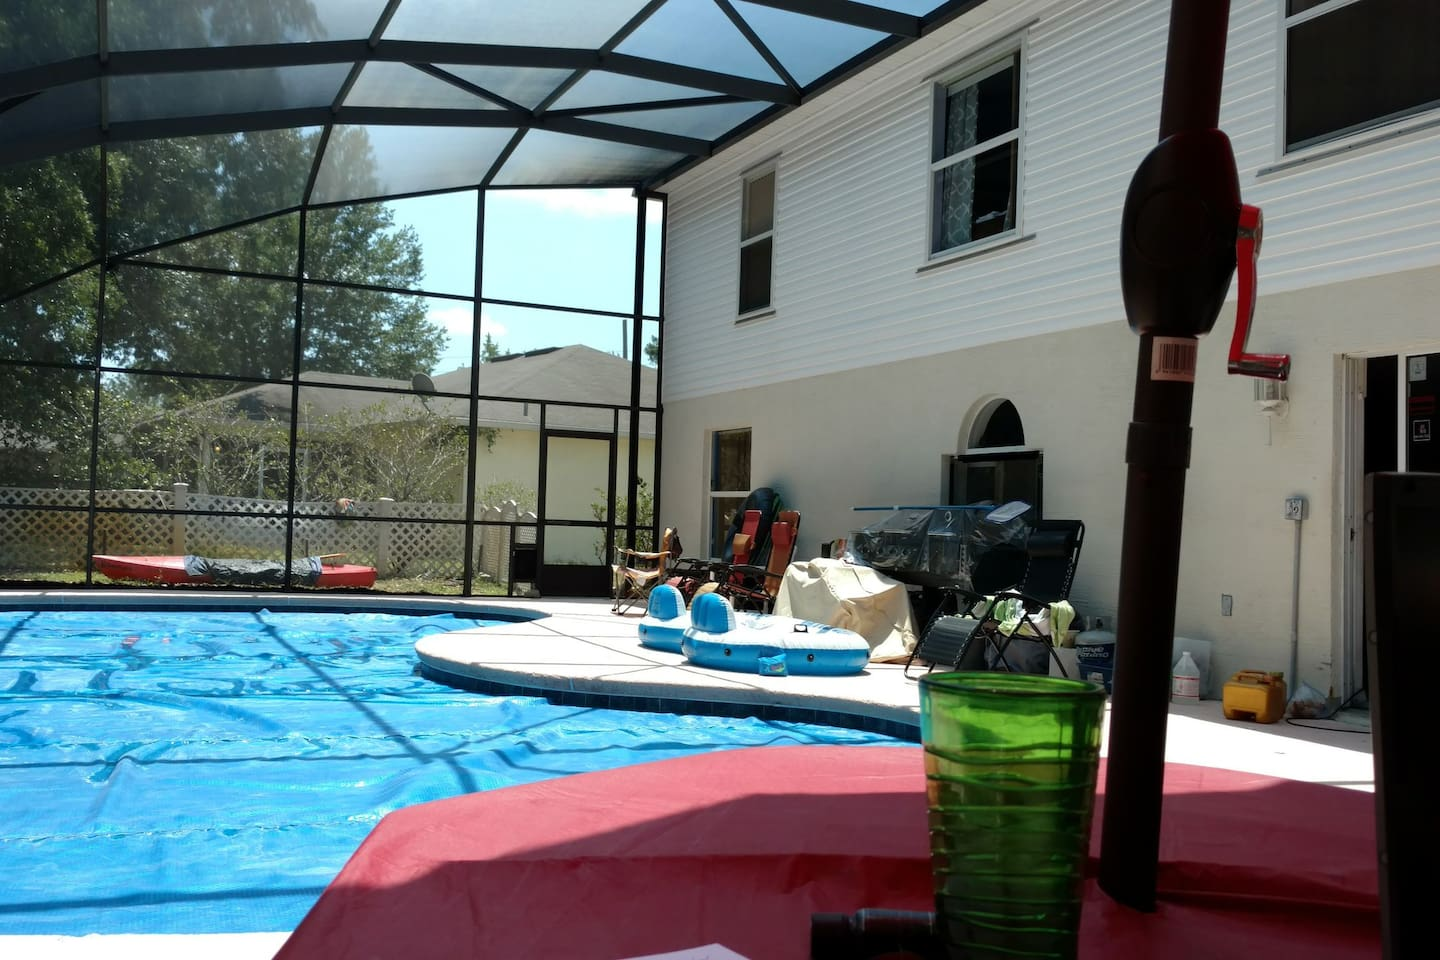 The pool is awesome.  Its a pretty large pool.  3 feet on ether end and 6 feet in the middle.  On the lanai there is also the awesome hot tub, tables and cookout grill as well.